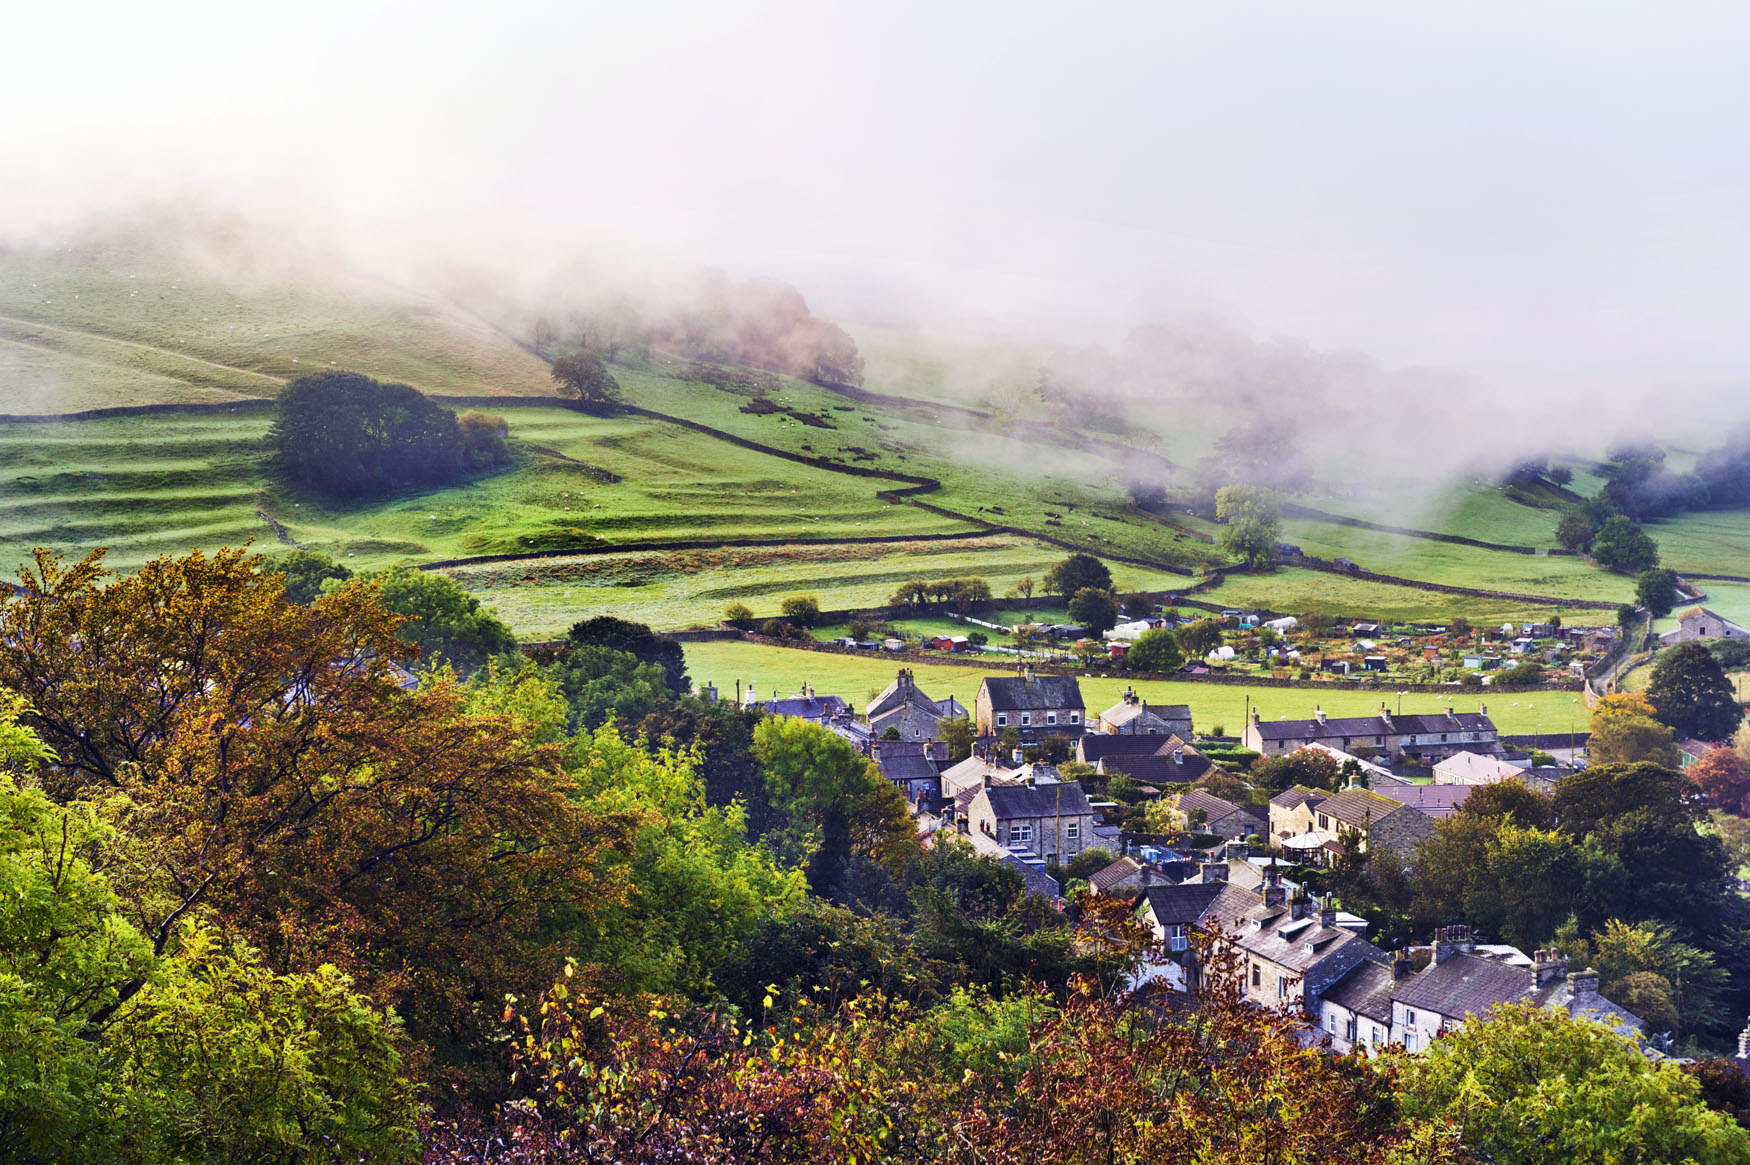 Autumn mist over Settle